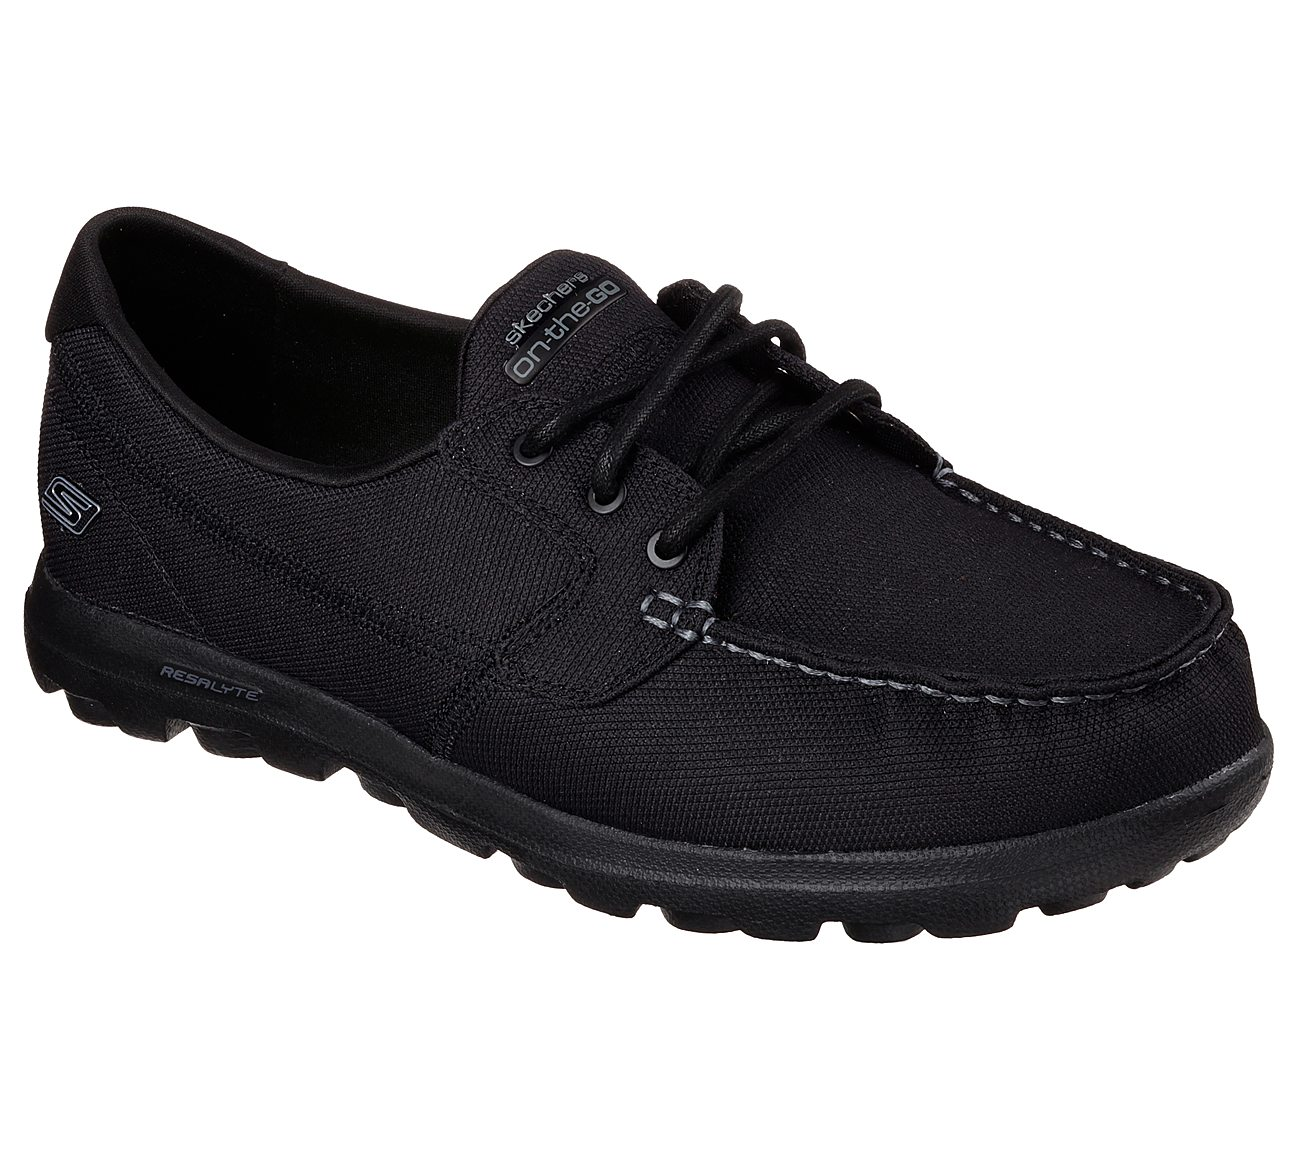 skechers on the go boat shoes with goga mat